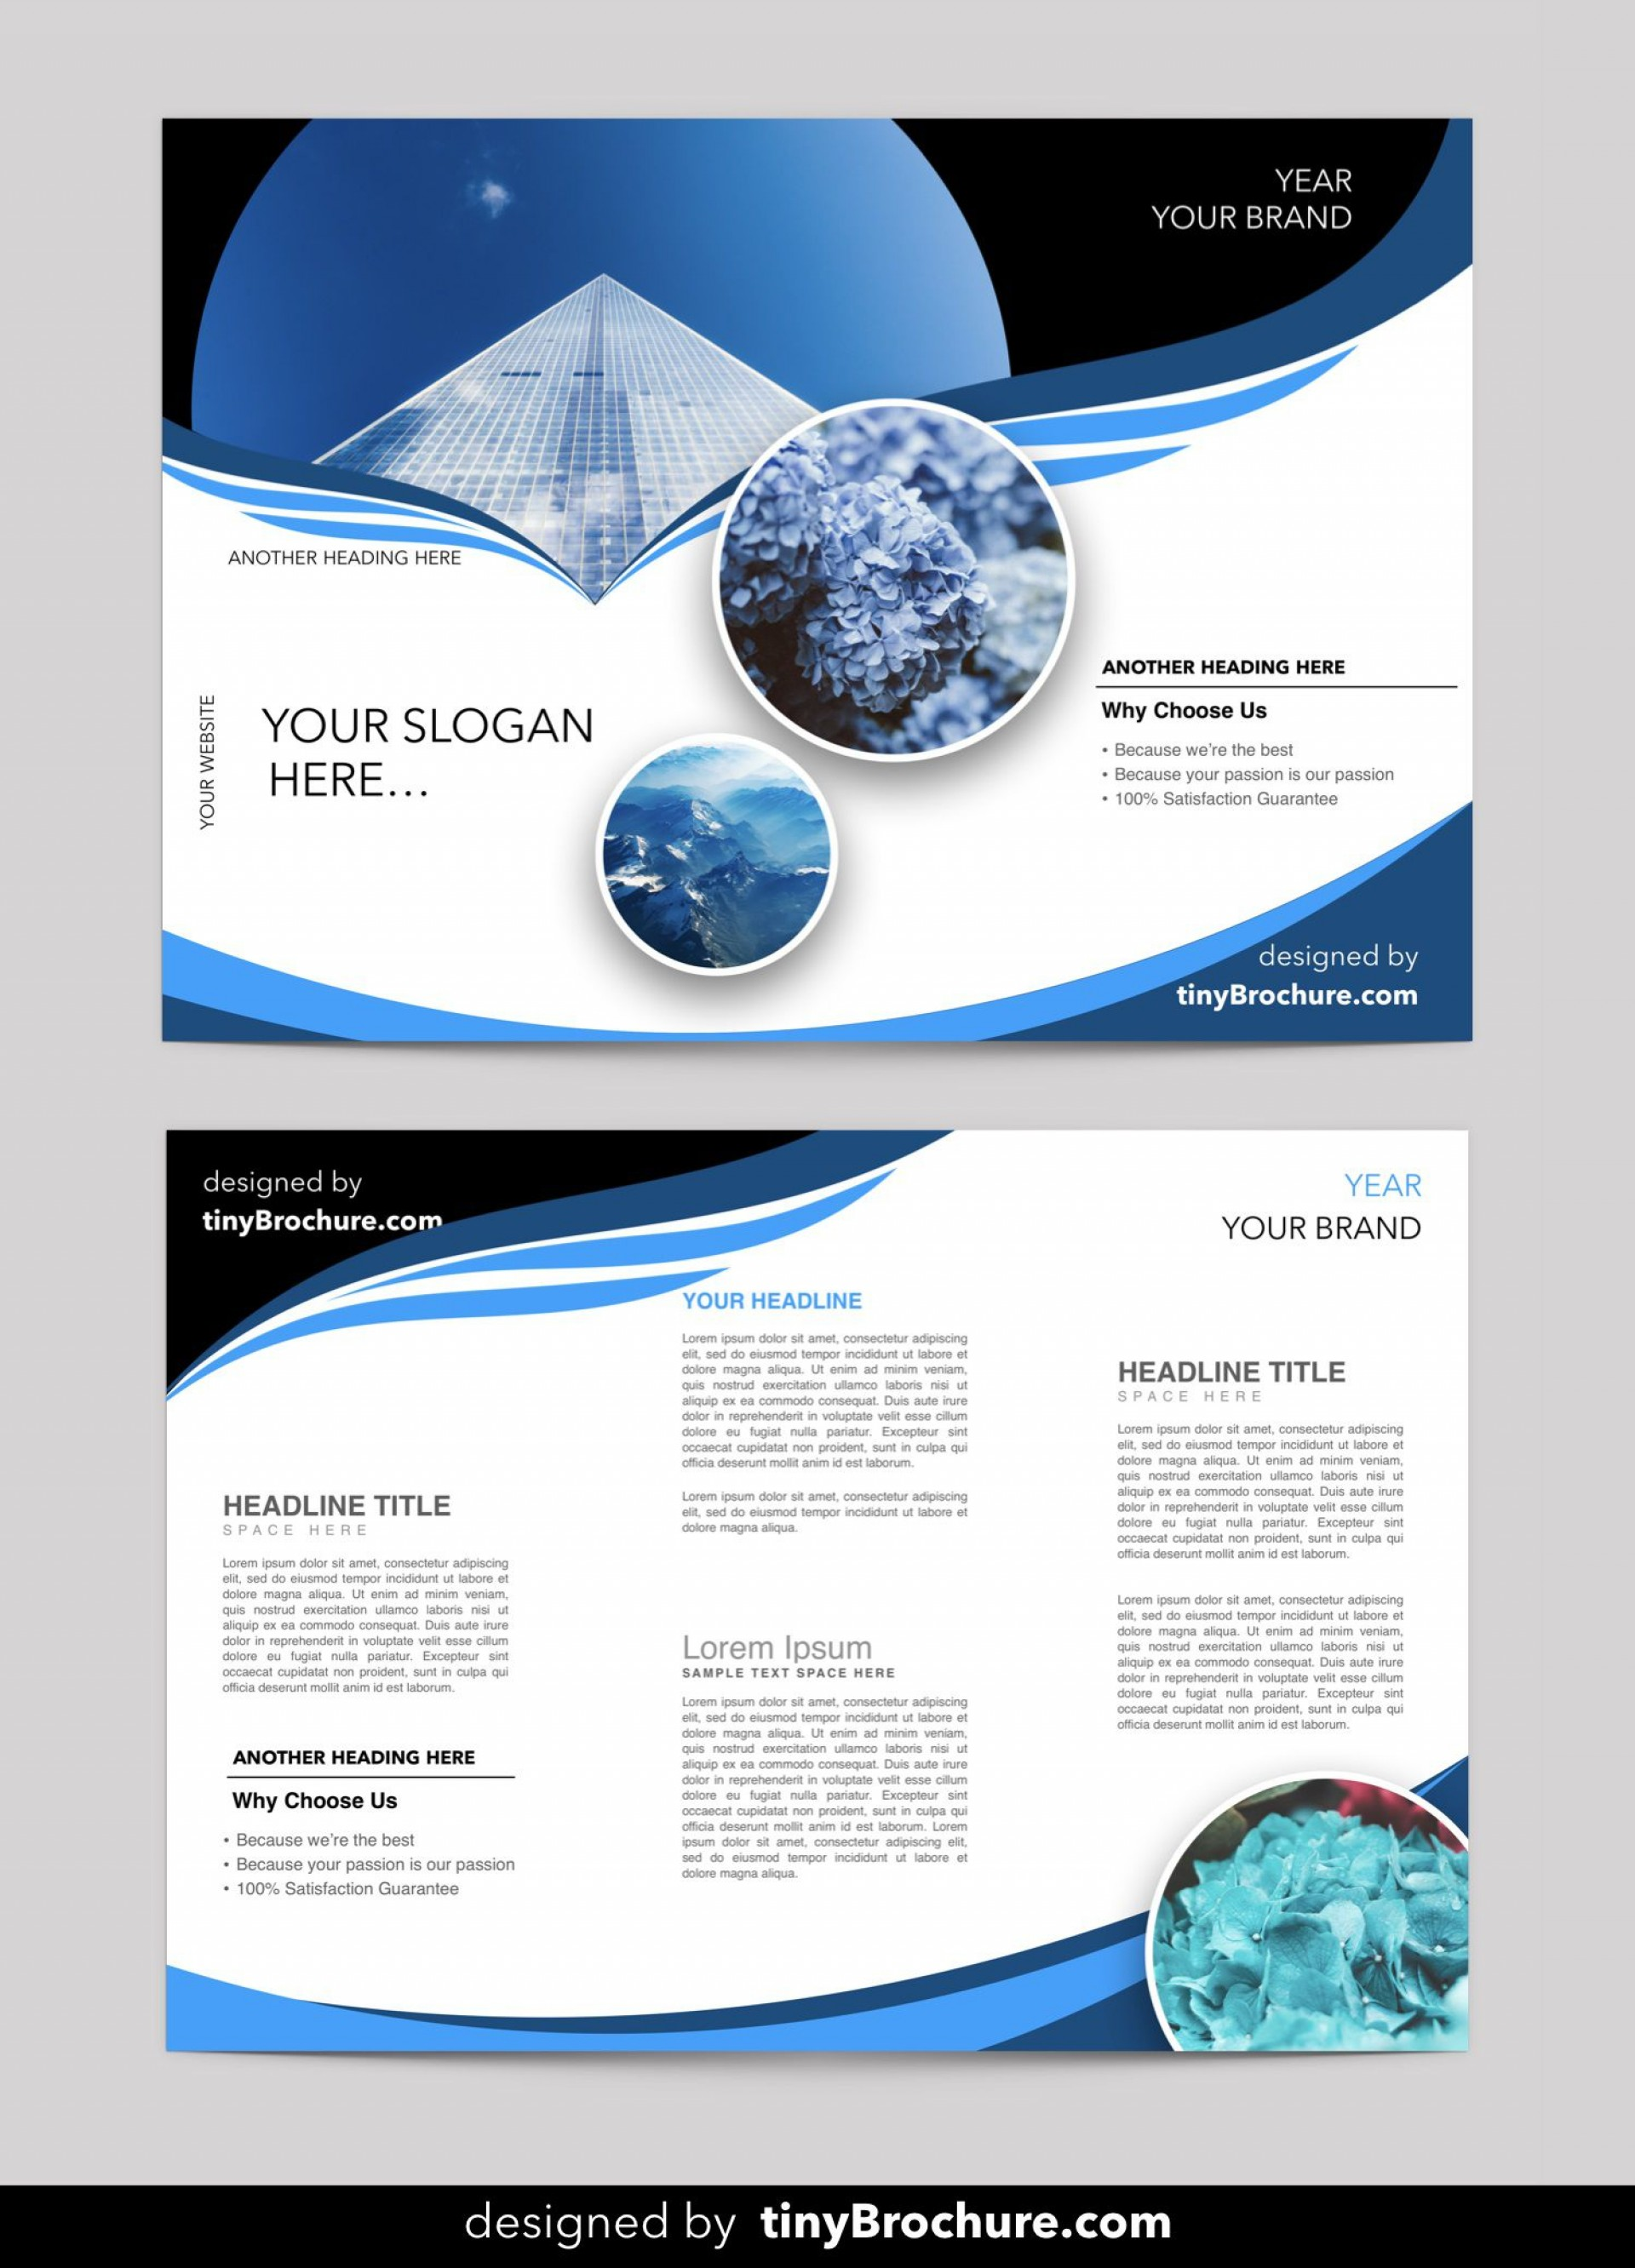 004 Stirring Free Brochure Template Download Image  Psd Tri Fold For Word Corporate Busines1920